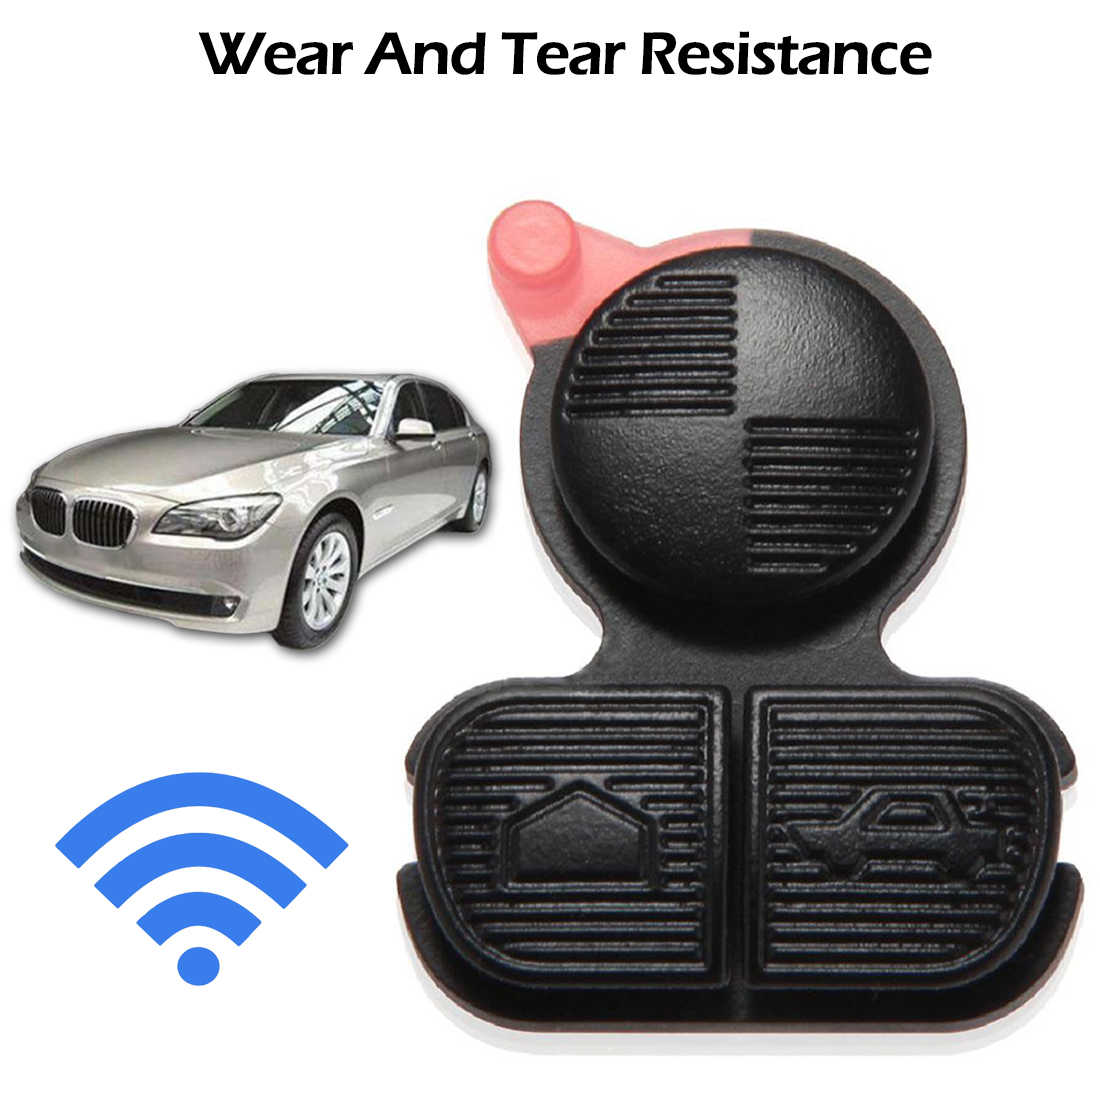 3 Buttons Silicone Car Key Cover Case Shell For BMW E46 Z3 E36 E38 E39 Replacement Entry Remote Key Fob Shell Case Housing